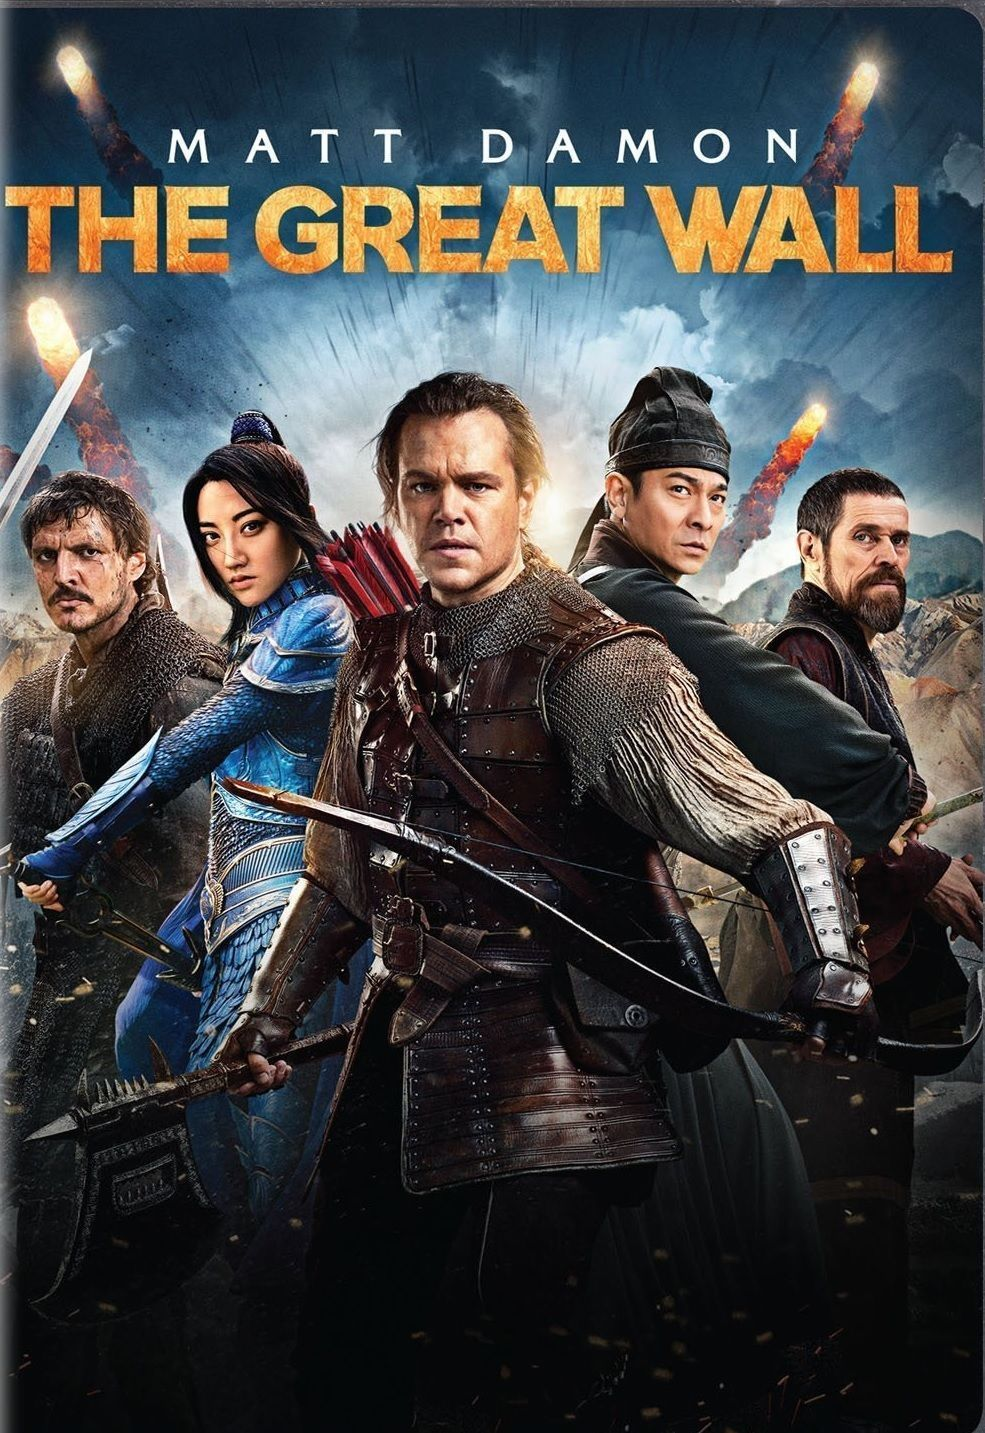 the great wall 2017 matt damon action format dvd new common rh pinterest com